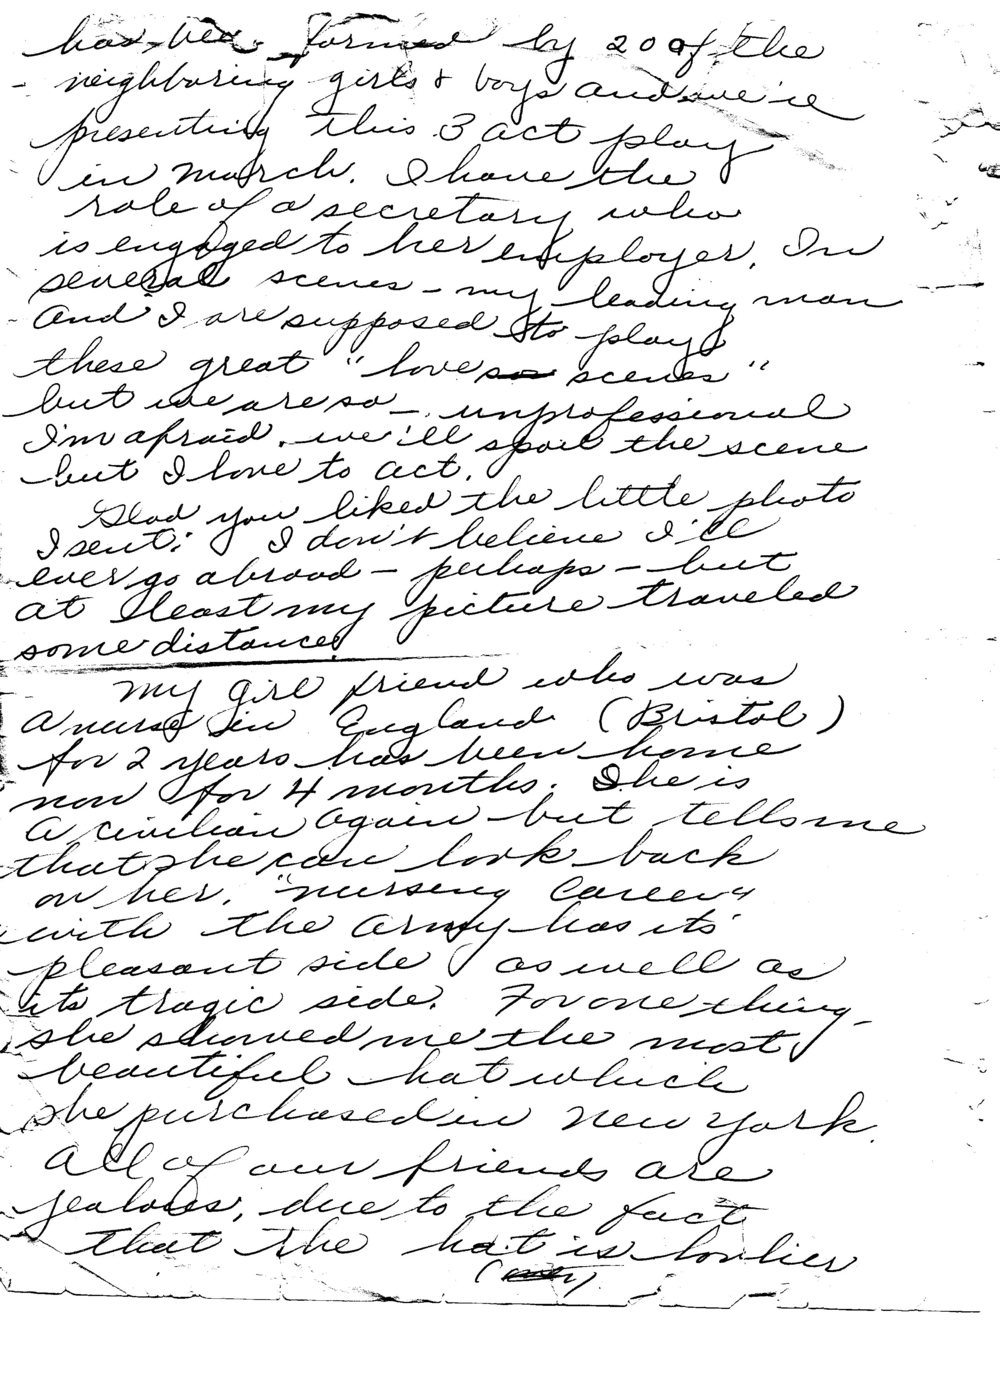 Ruth to Bob, Letter 6, February 1946, page 4 of 5